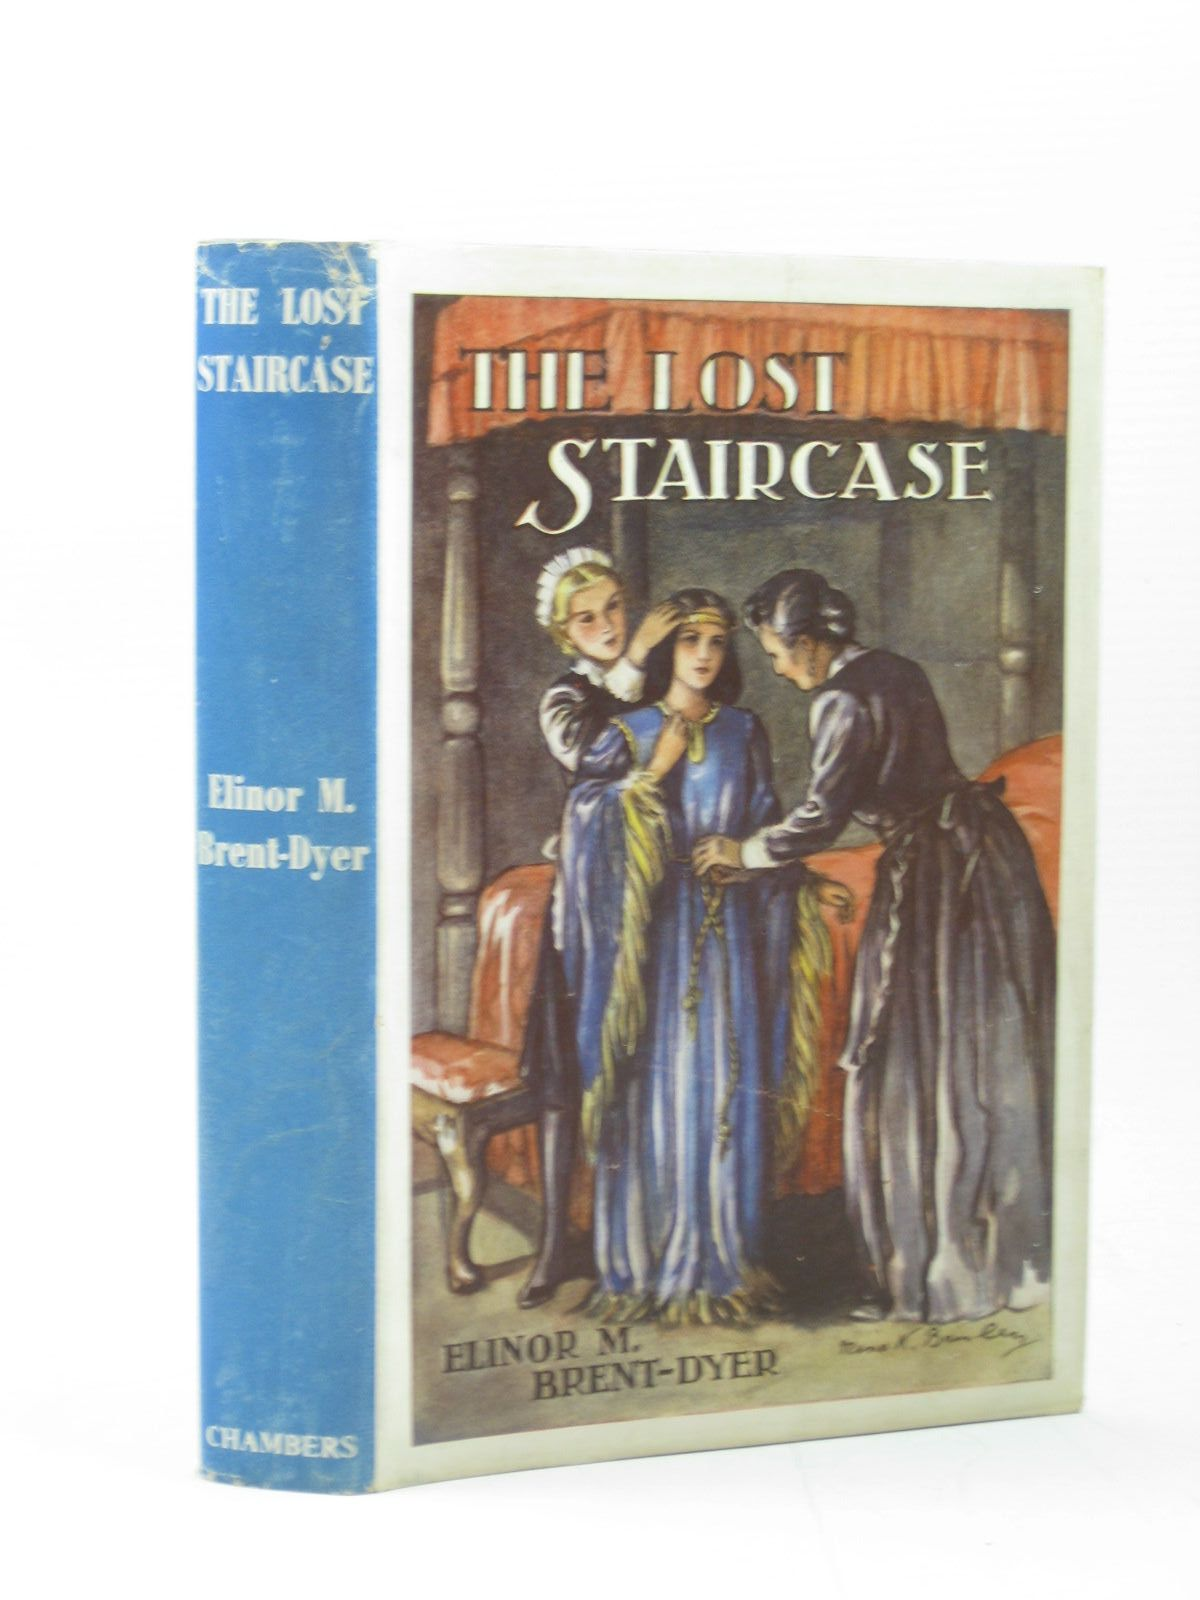 Photo of THE LOST STAIRCASE written by Brent-Dyer, Elinor M. published by W. & R. Chambers Limited (STOCK CODE: 1313008)  for sale by Stella & Rose's Books